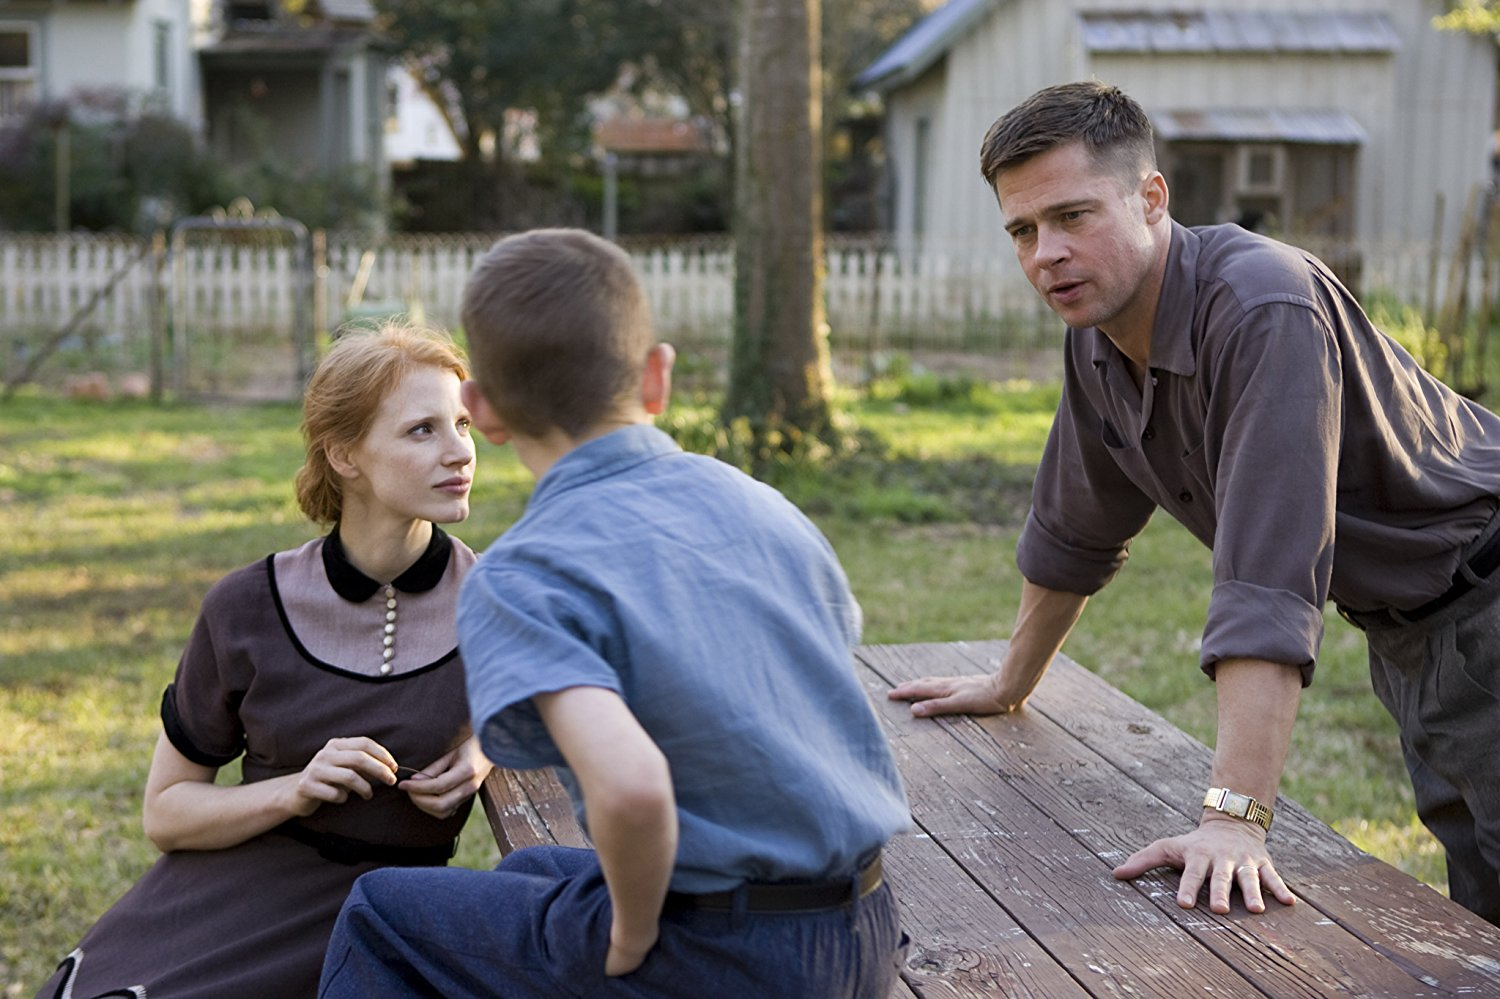 Mother Jessica Chastain, Laramie Eppler, father Brad Pitt in The Tree of Life (2011)